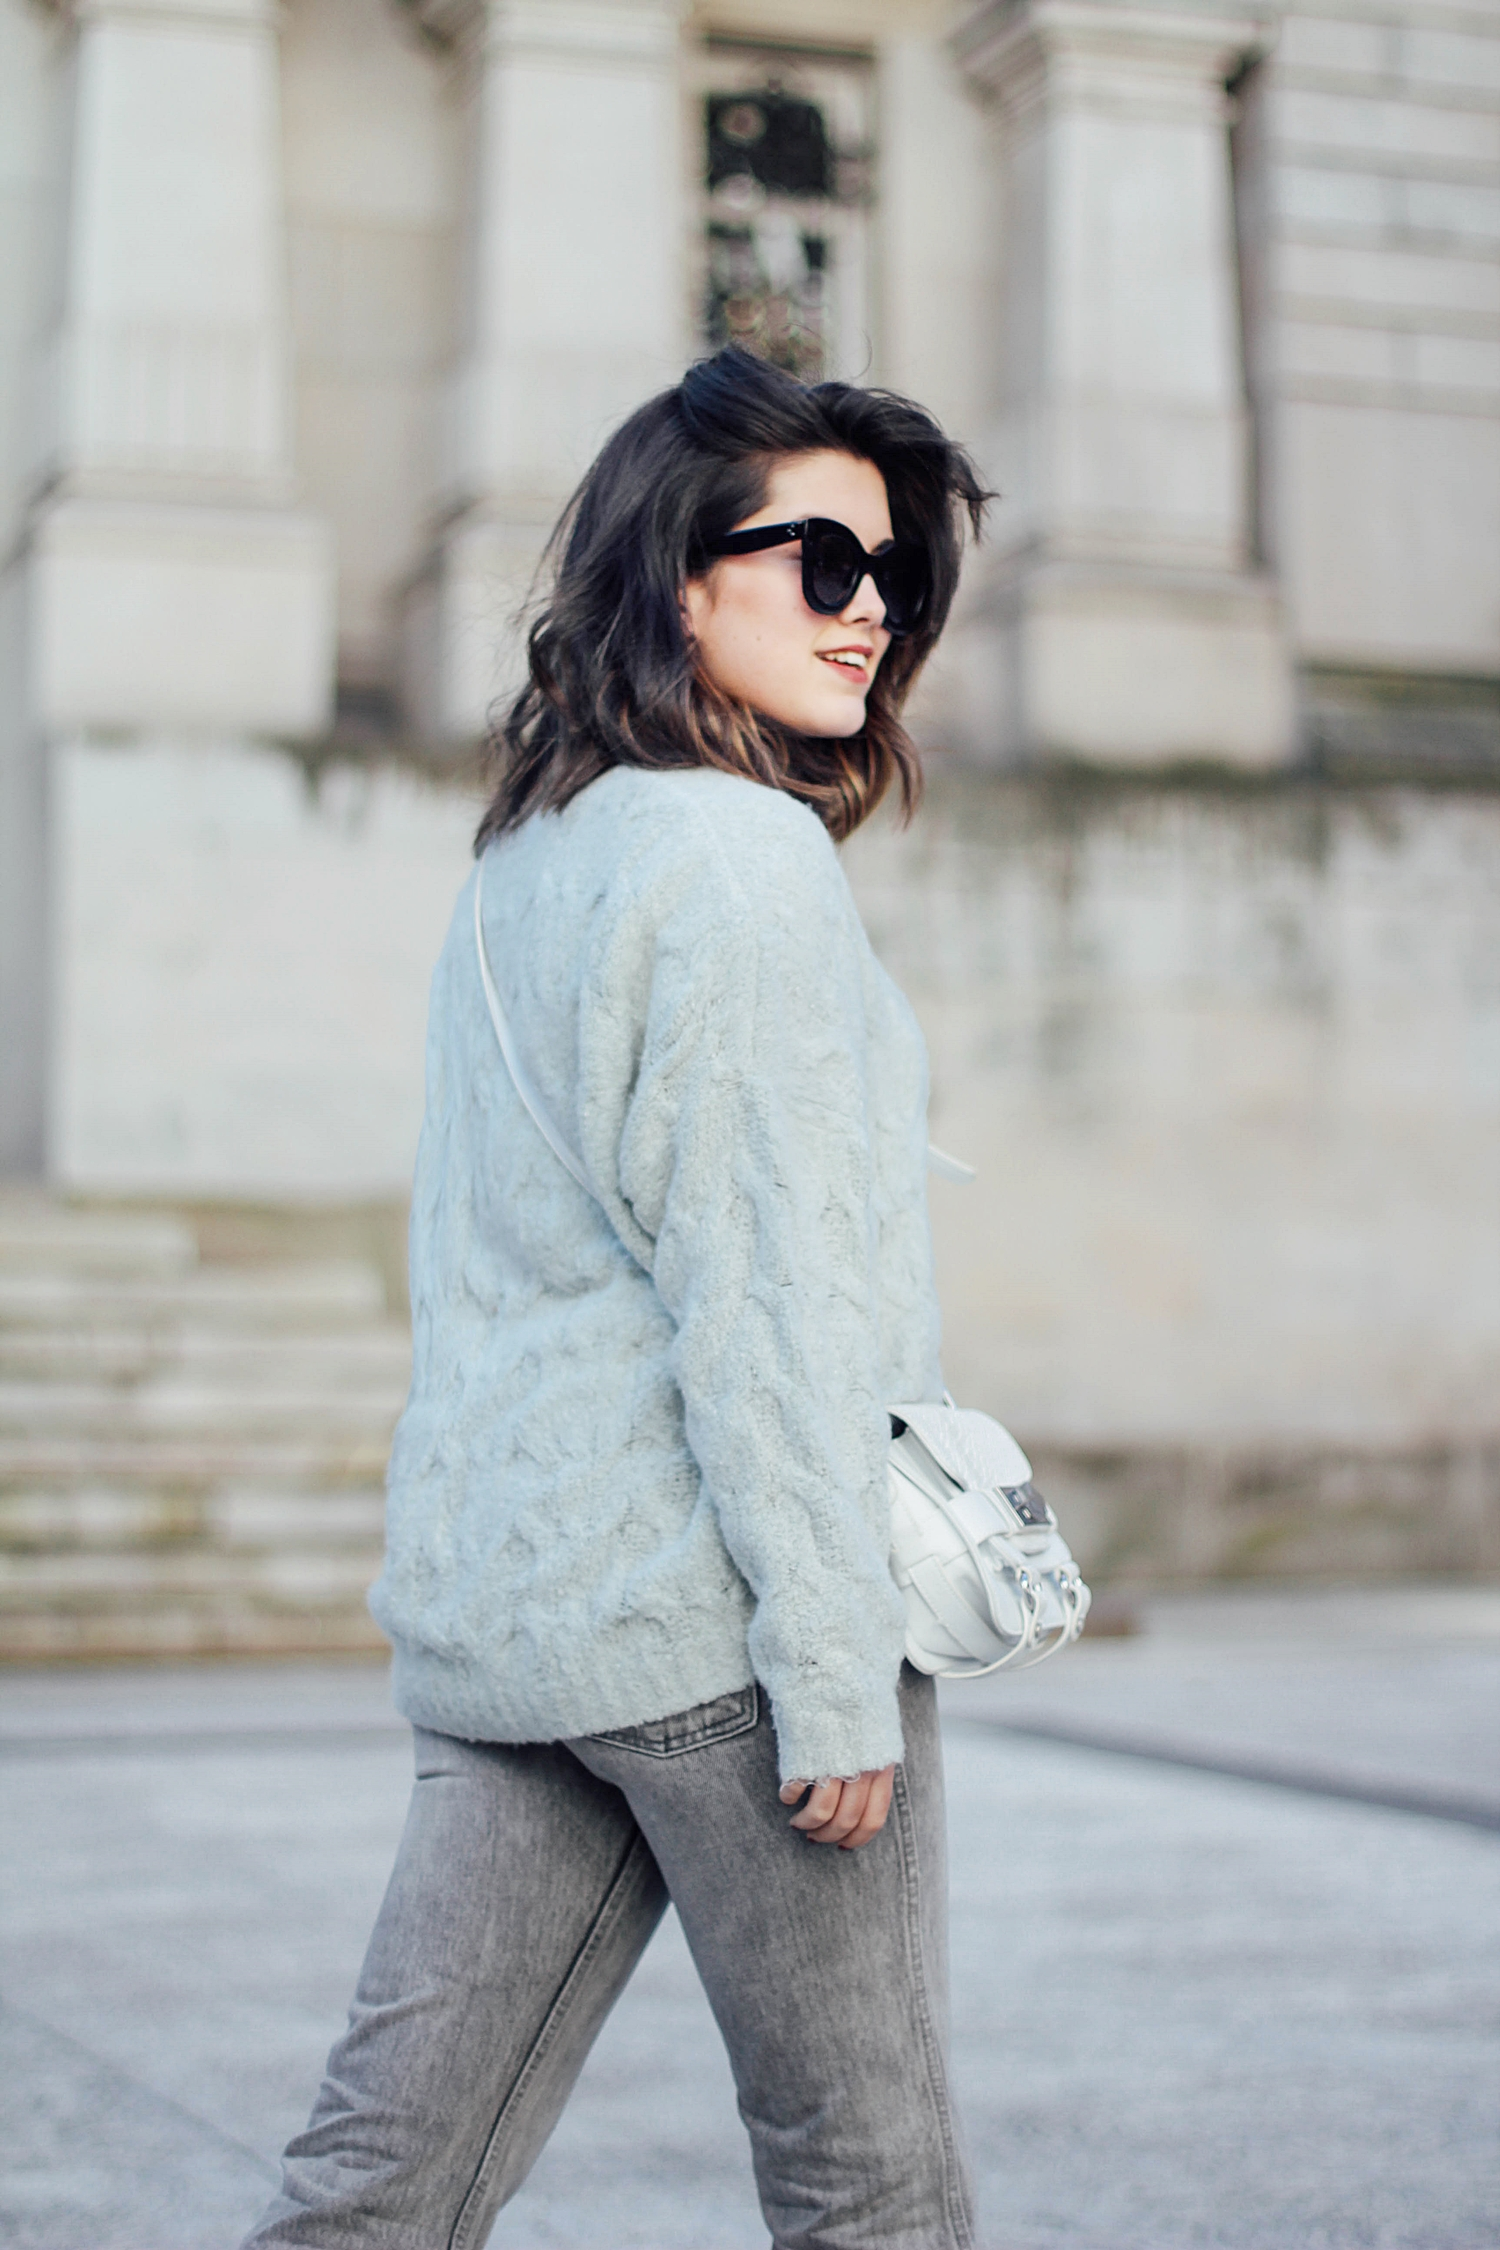 levi's denim jacket vintage_mom jeans_gucci loafers_celine sunglasses_baby marta_streetstyle_mint_h&m_sweater